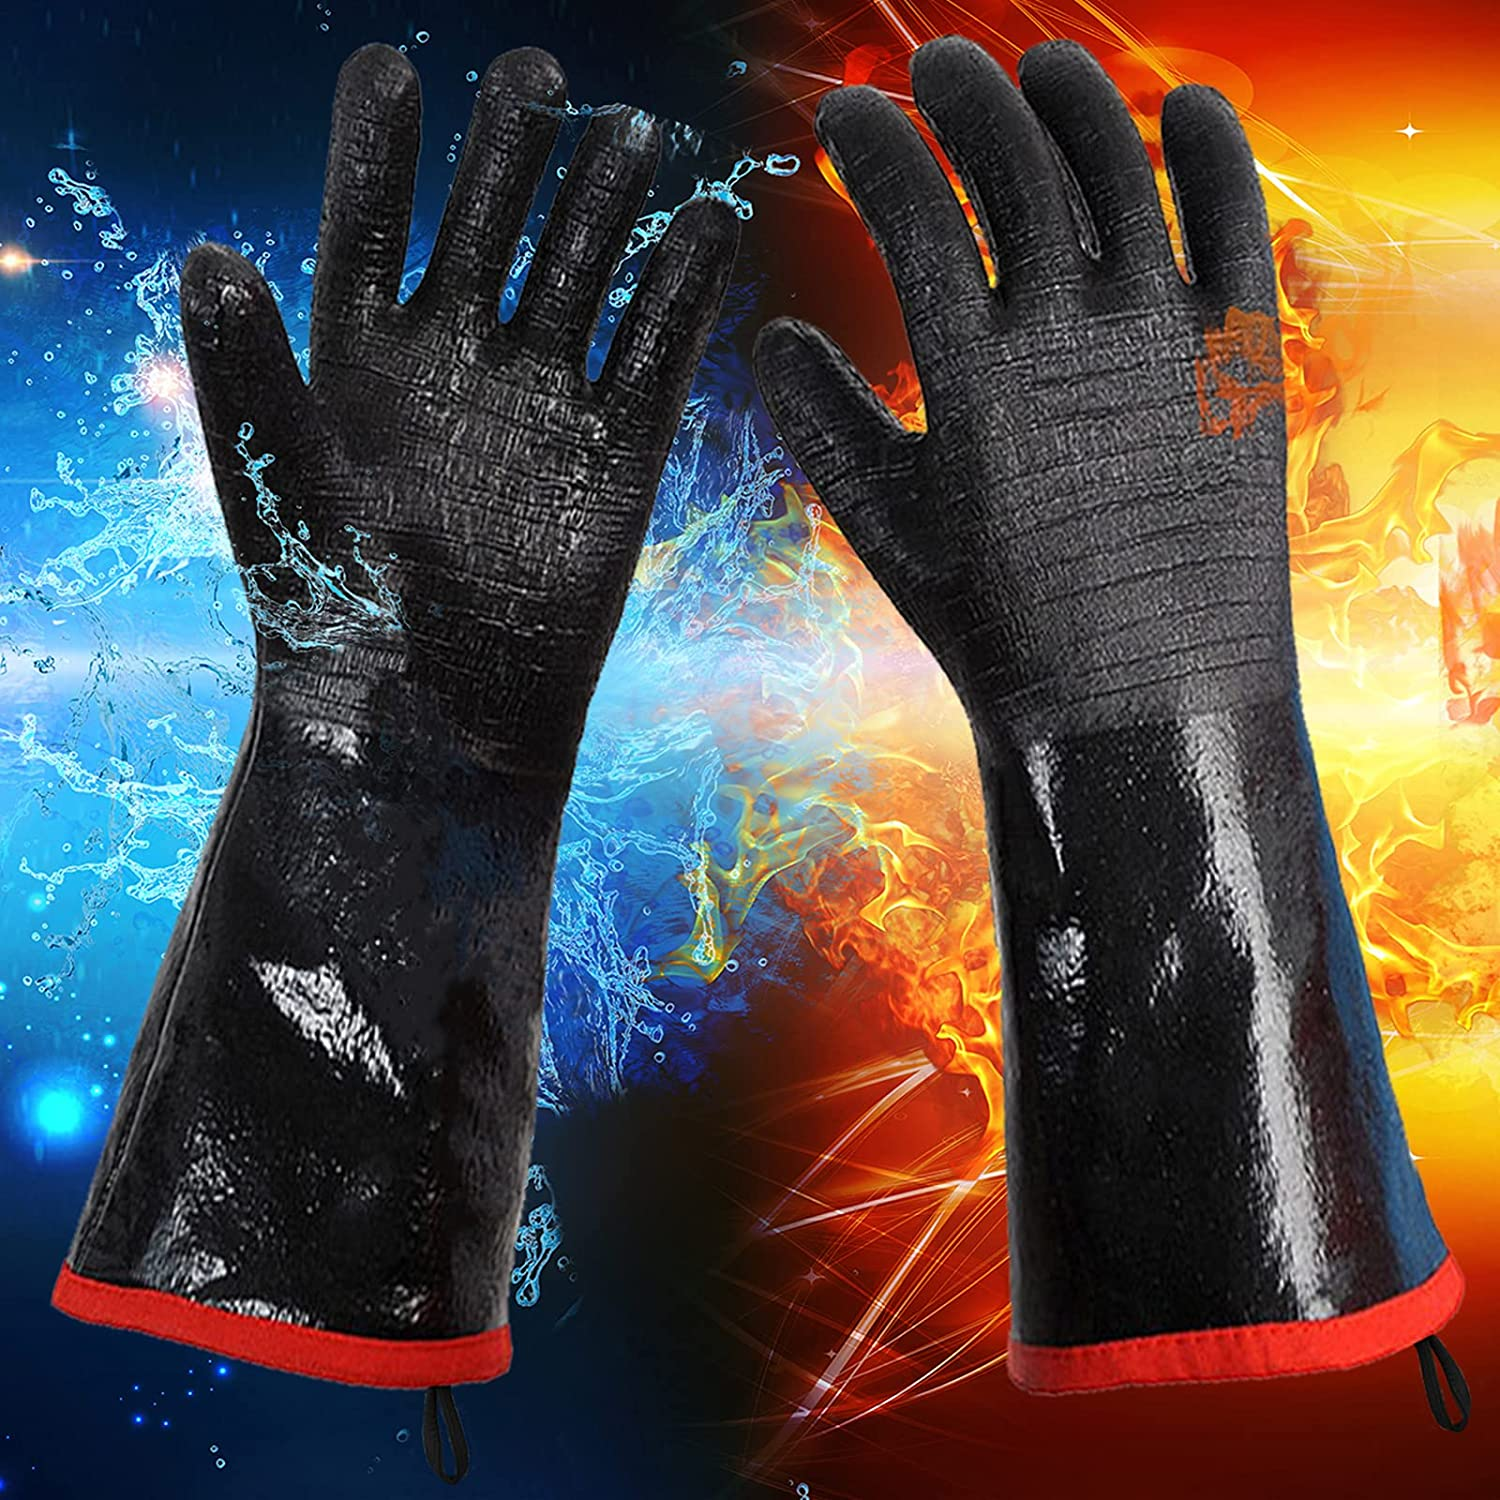 Insulated Heat/Cold Resistant BBQ/Grill Gloves Oven Mitts for Smoker, Fry Turkey, Smoking Meat, Hot Food, Pot Holder, Water& Oil Proof Flame Retardant with Neoprene Coating (18